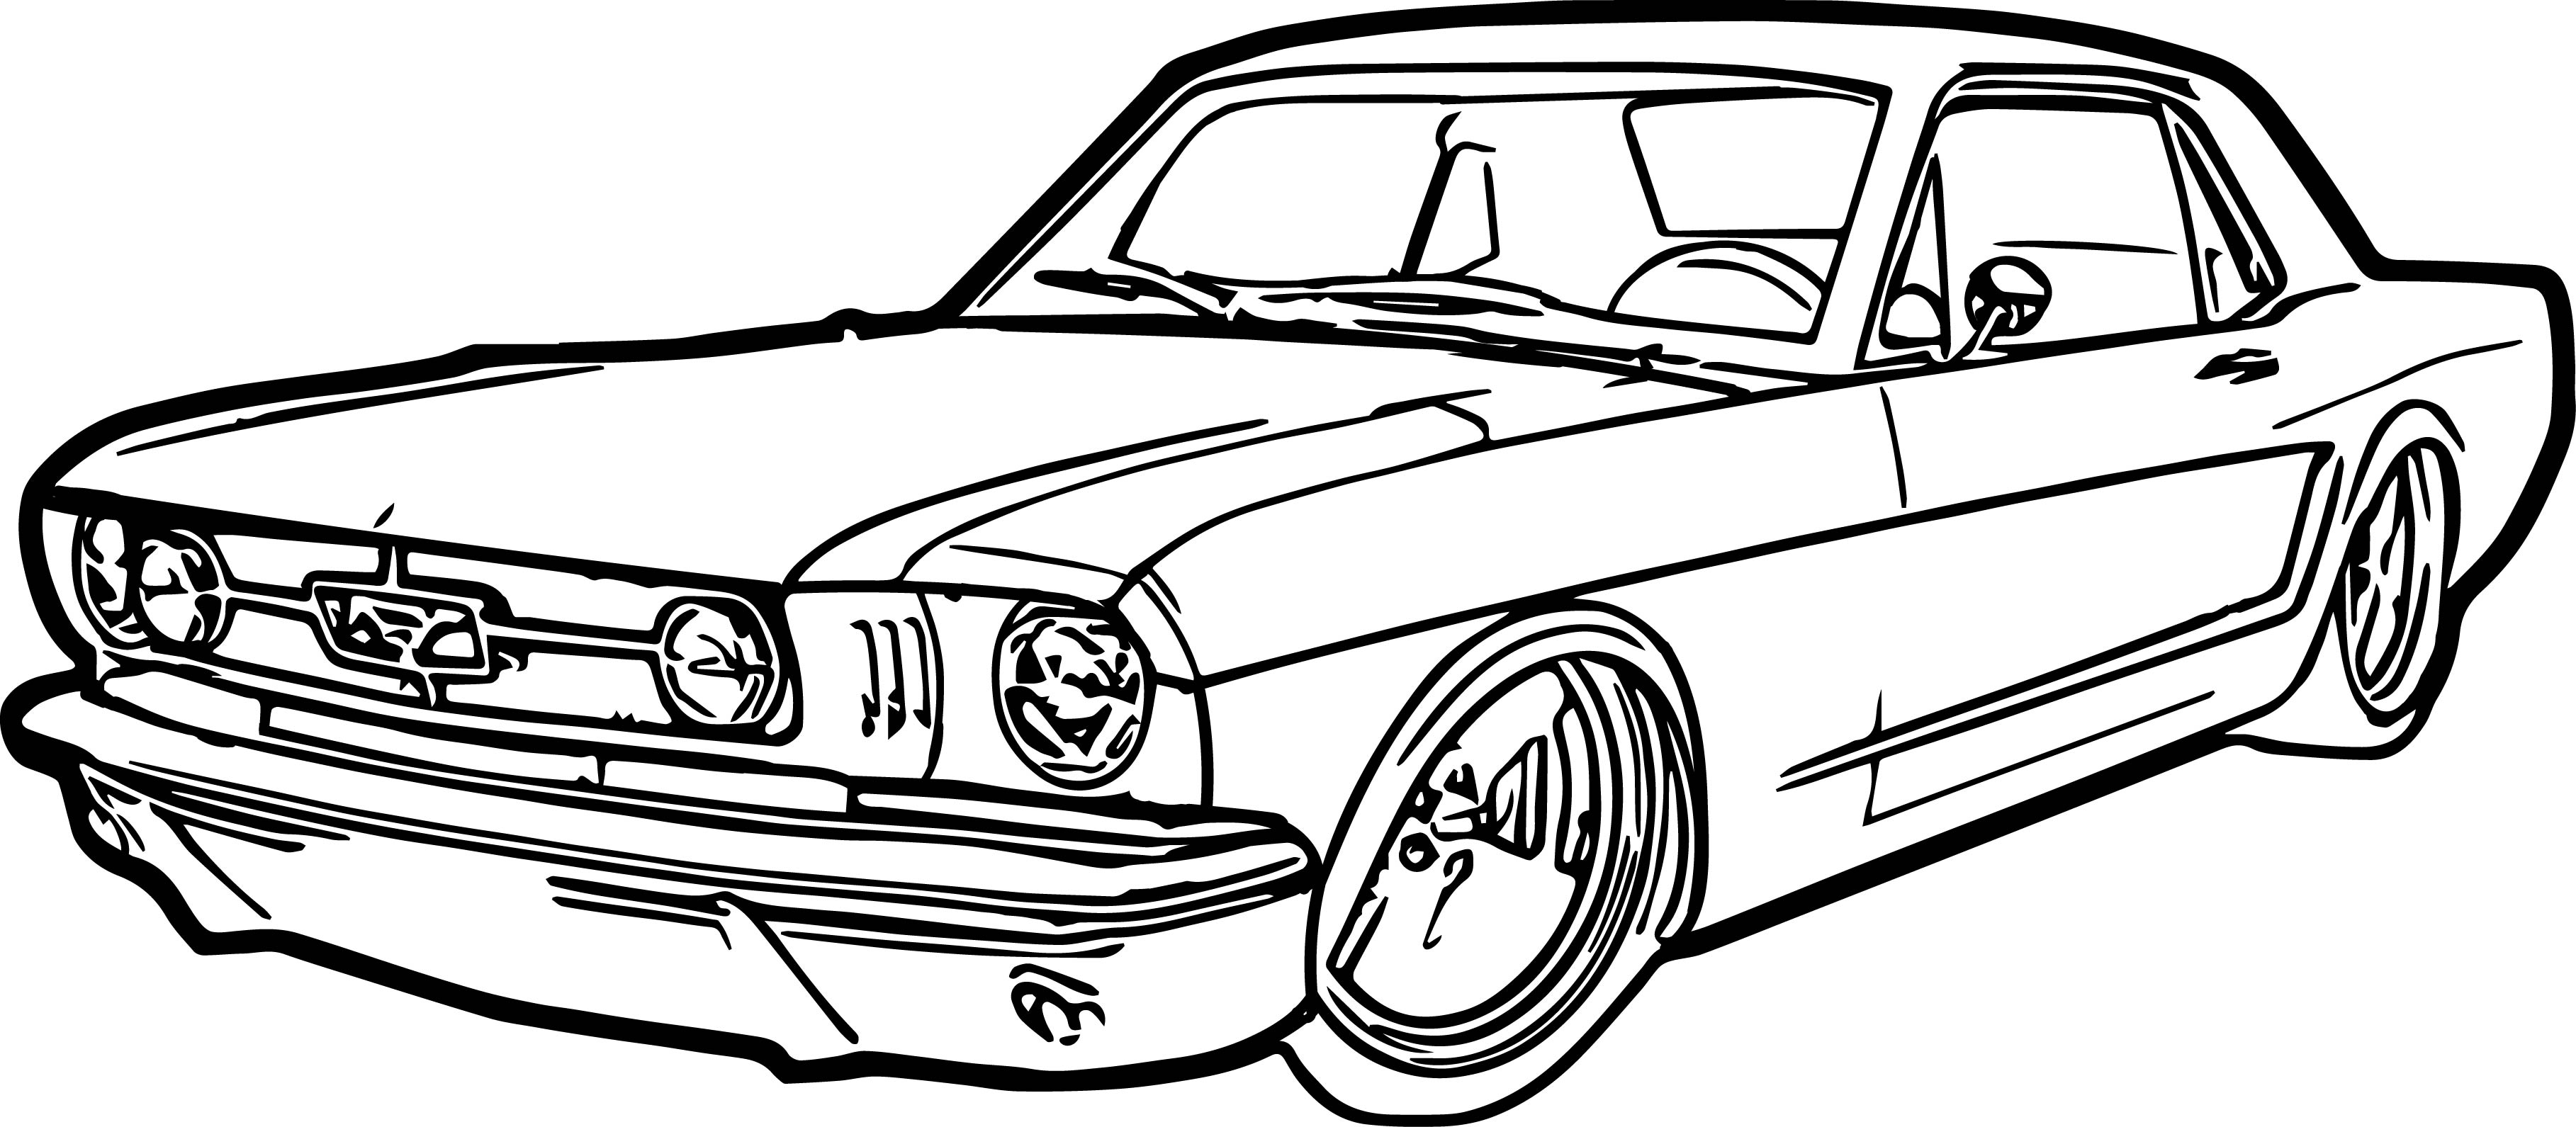 Antique cars coloring pages - Ford Mustang Car Coloring Page